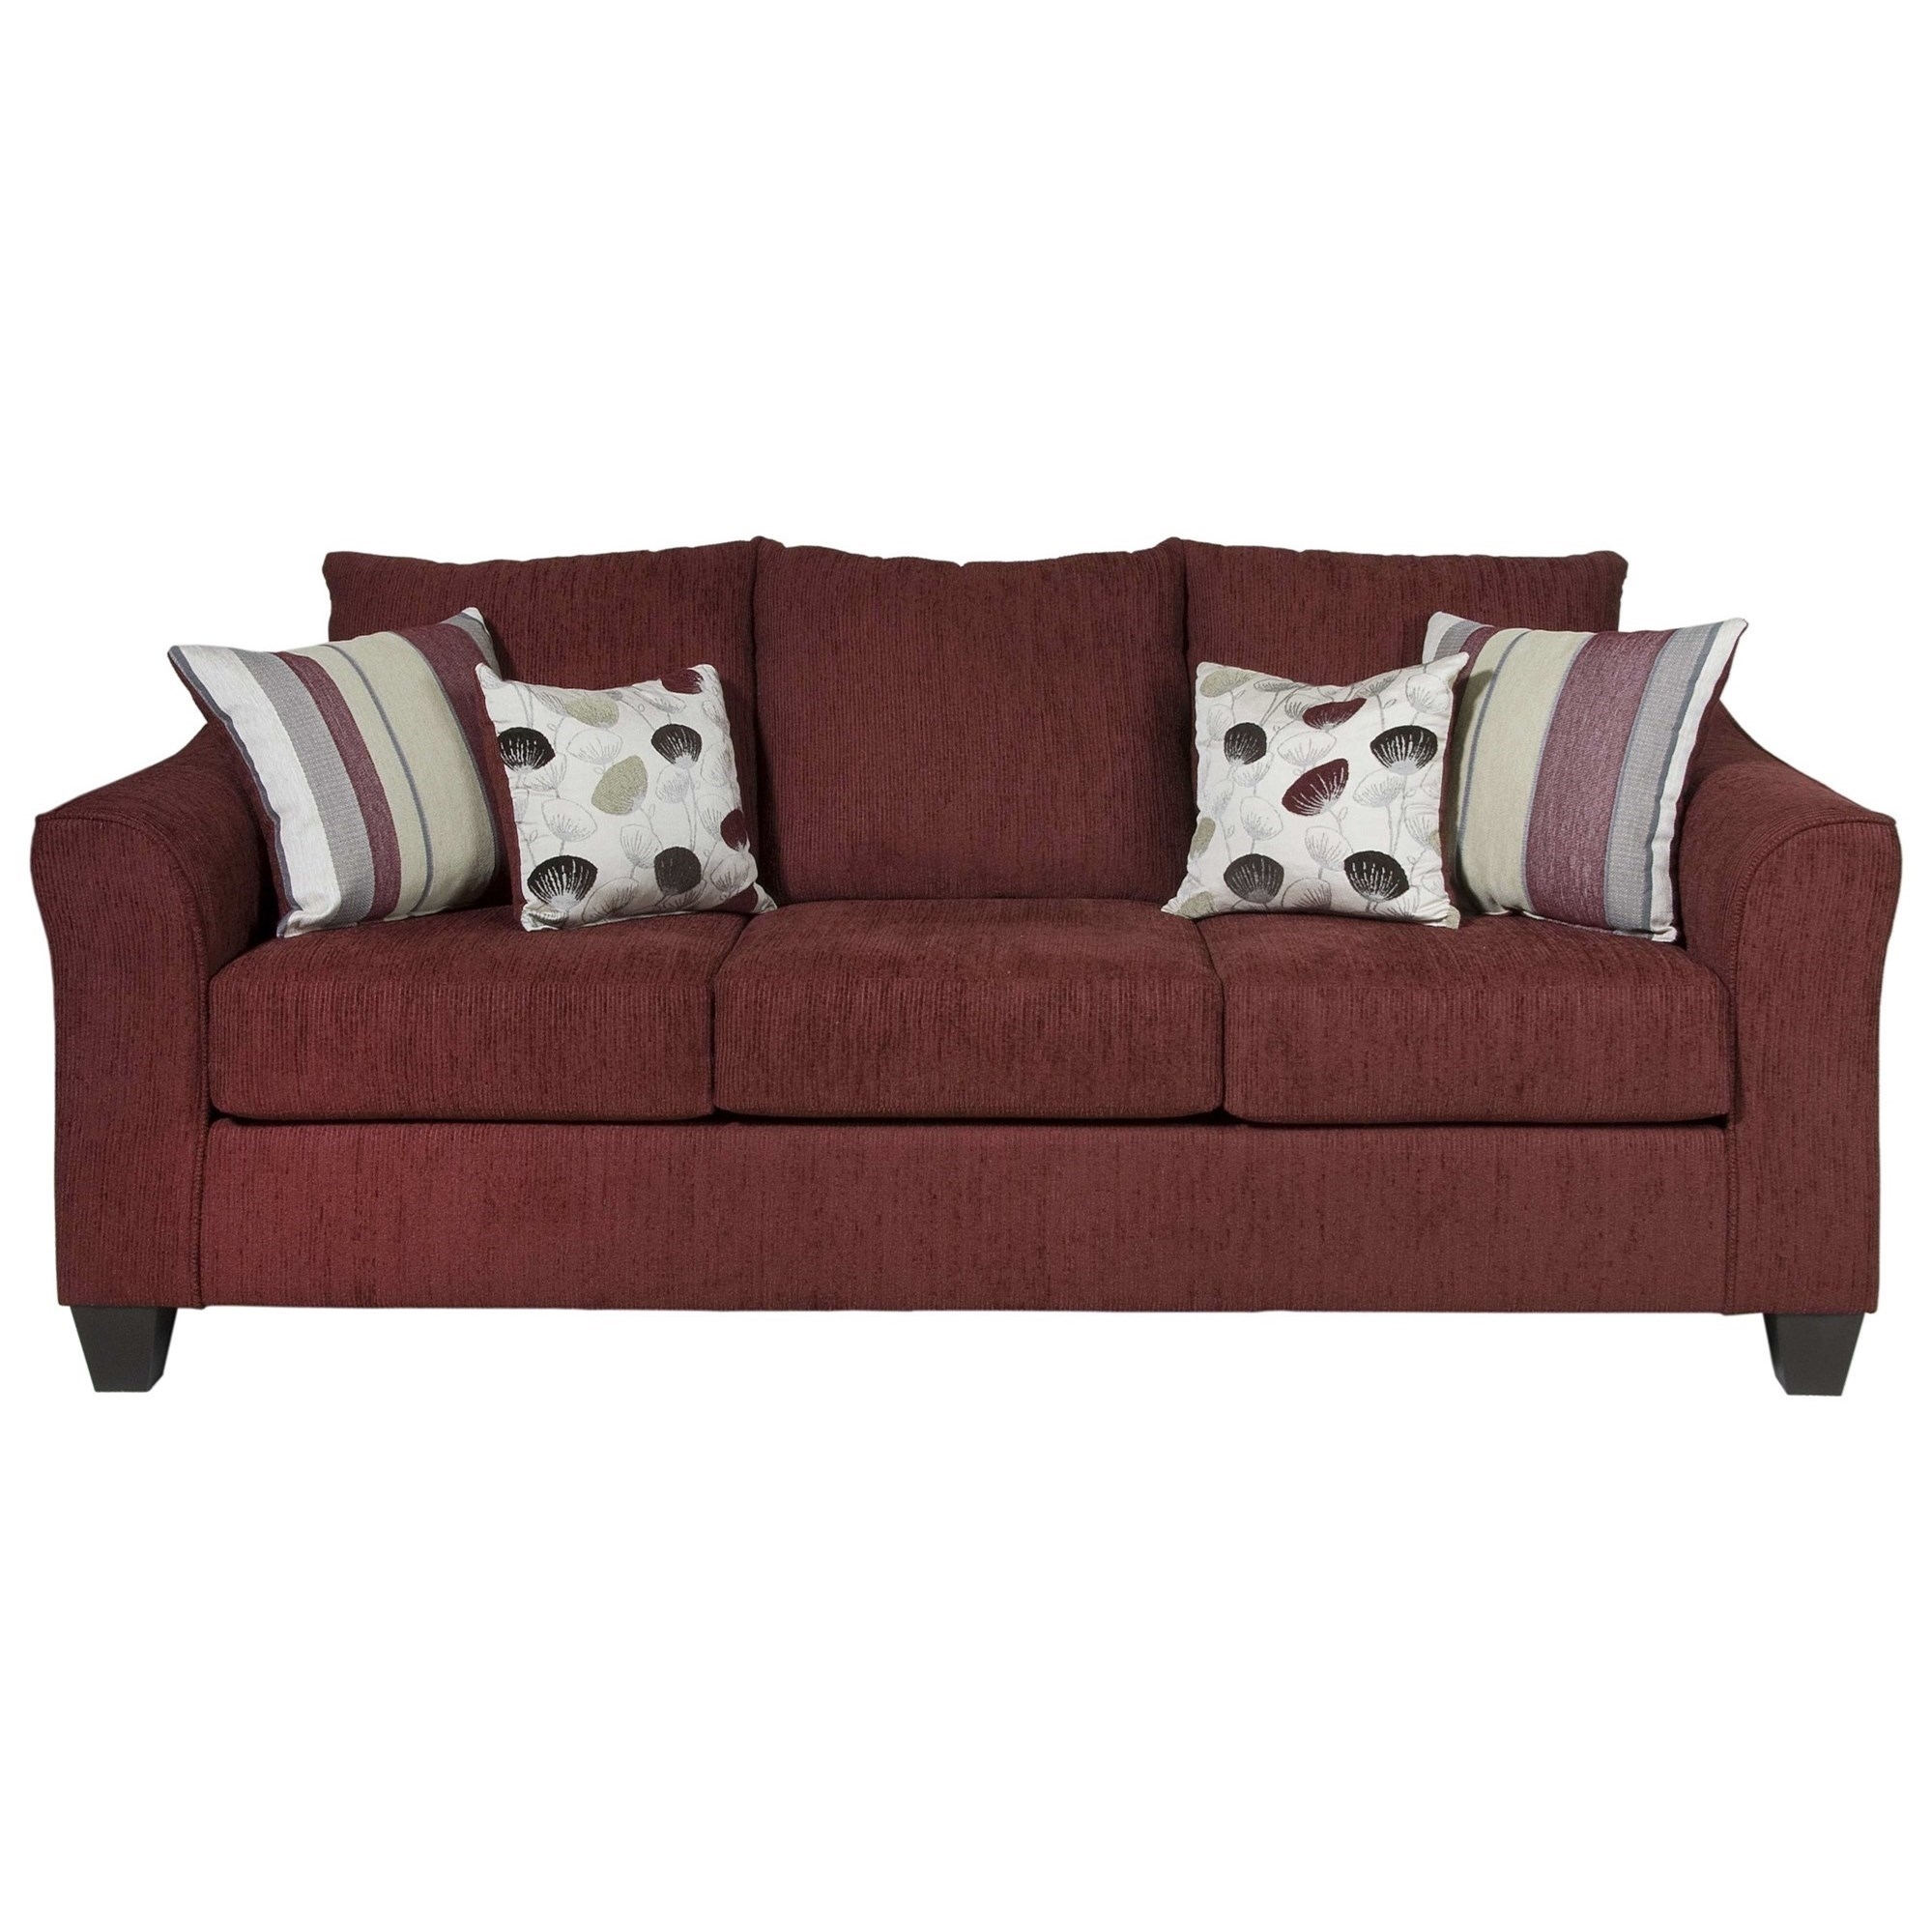 Casual Upholstered Sofa